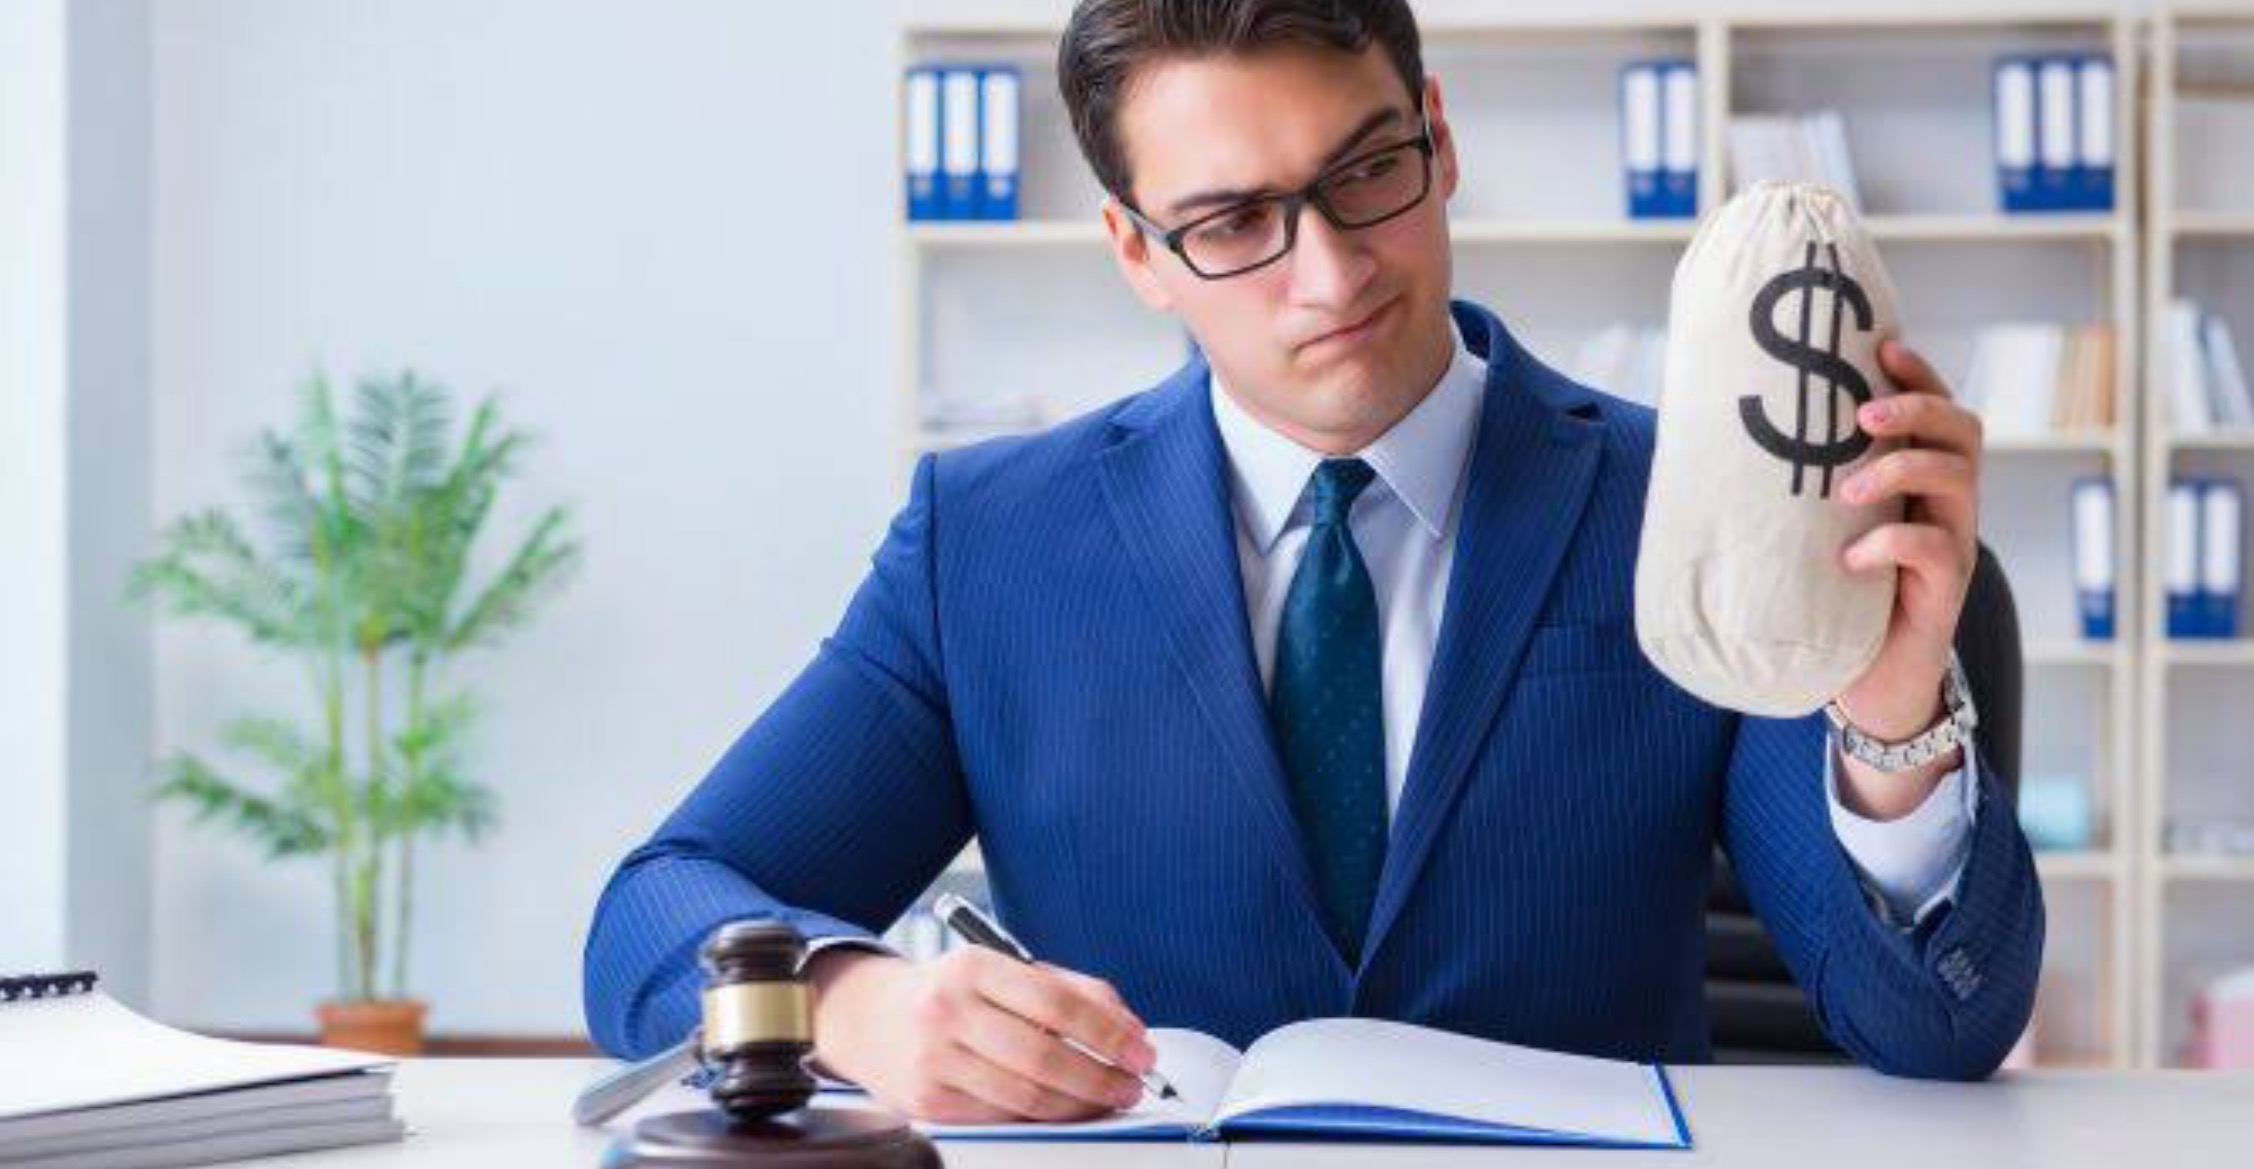 SHOULD LAWYERS TRADE AS FUNERAL DIRECTORS?